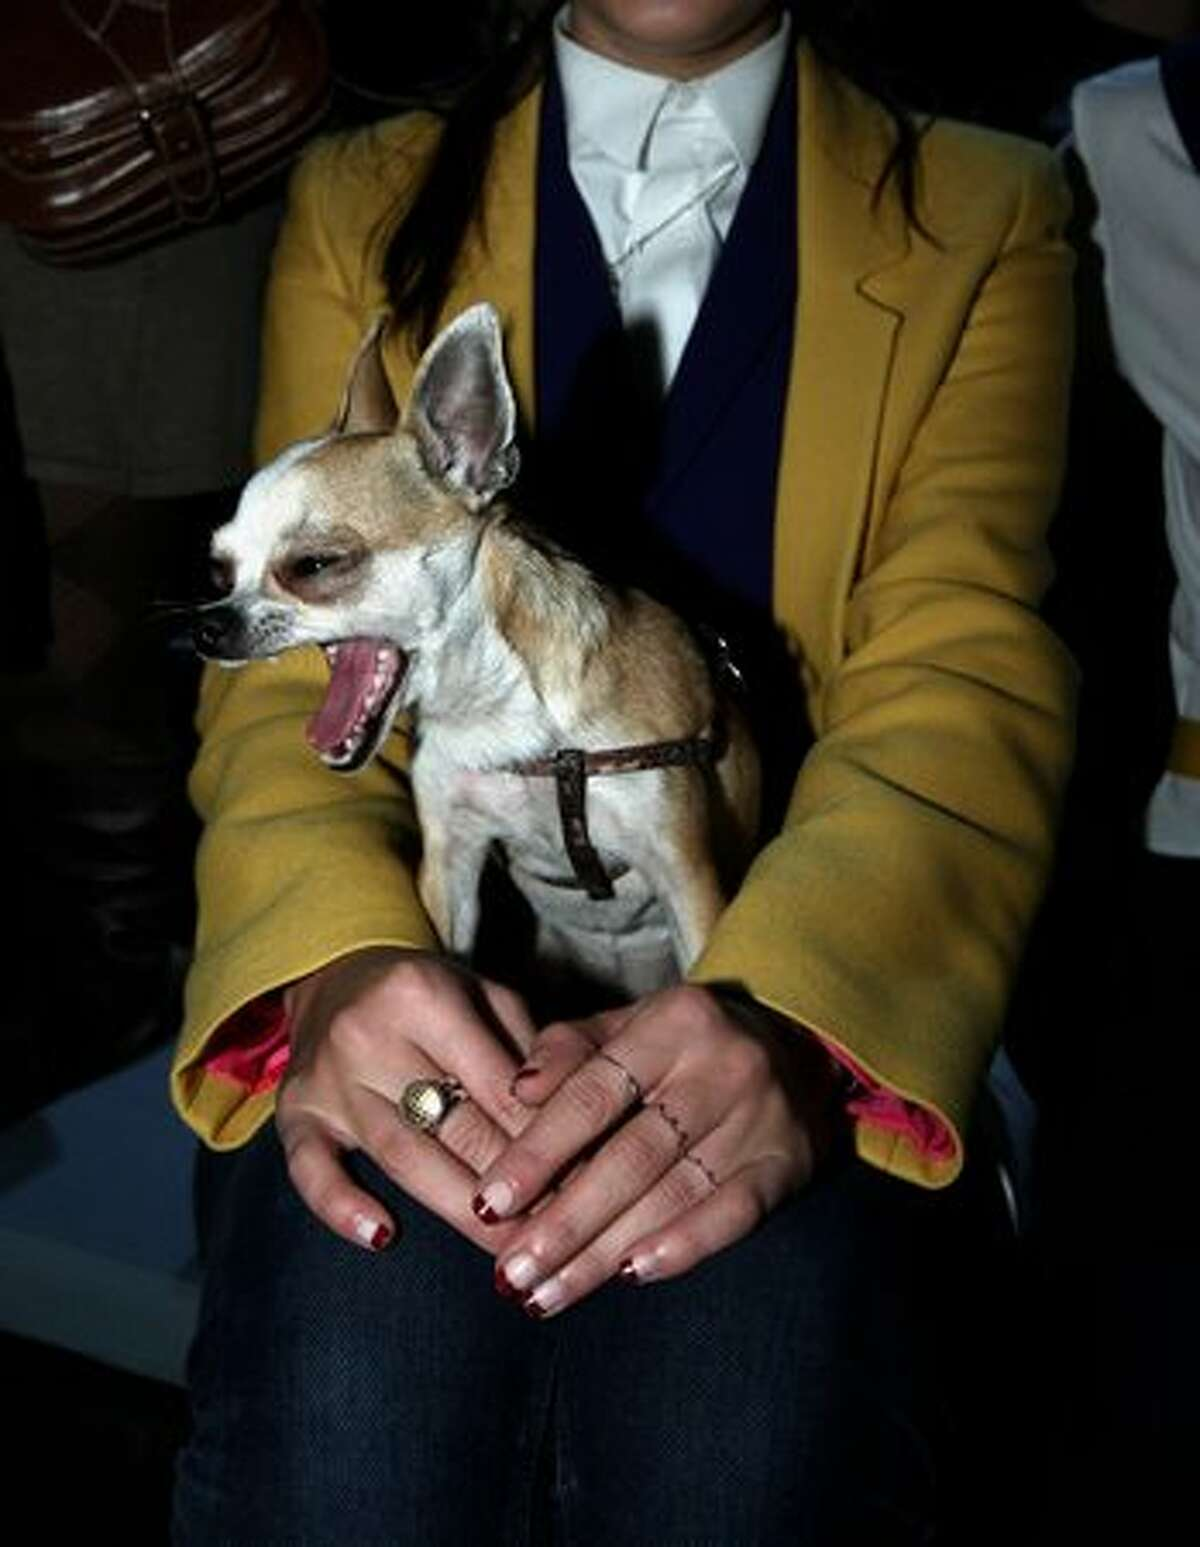 A dog at the Cibeles Fashion Week at Ifema on February 20, 2011 in Madrid, Spain.